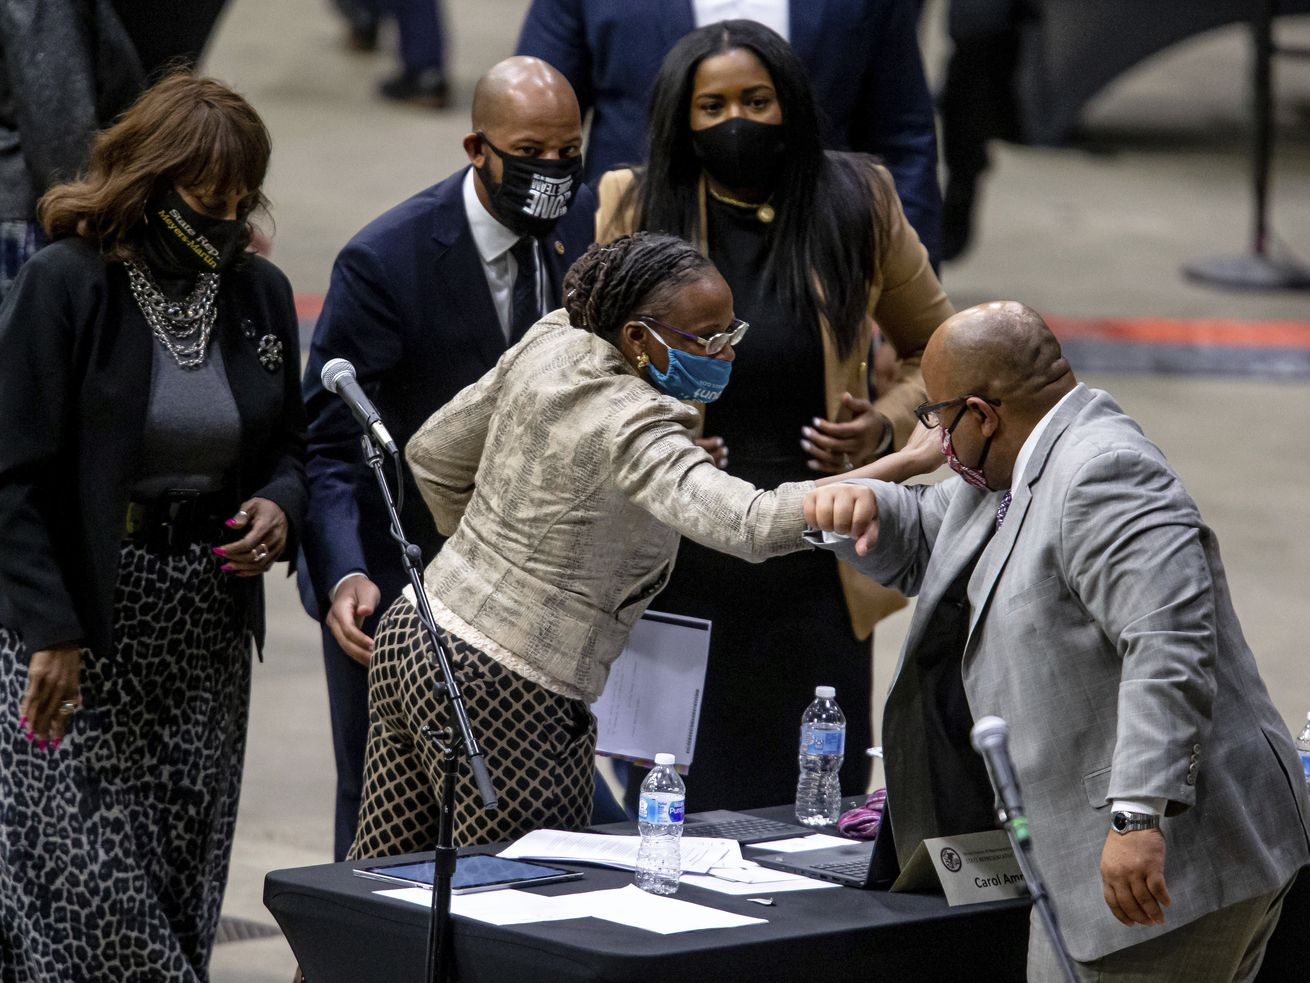 State Rep. Carol Ammons, D-Urbana, gets an elbow bump from state Rep. André Thapedi, D-Chicago, after passage of the Illinois Black Caucus' Education Pillar on Monday.